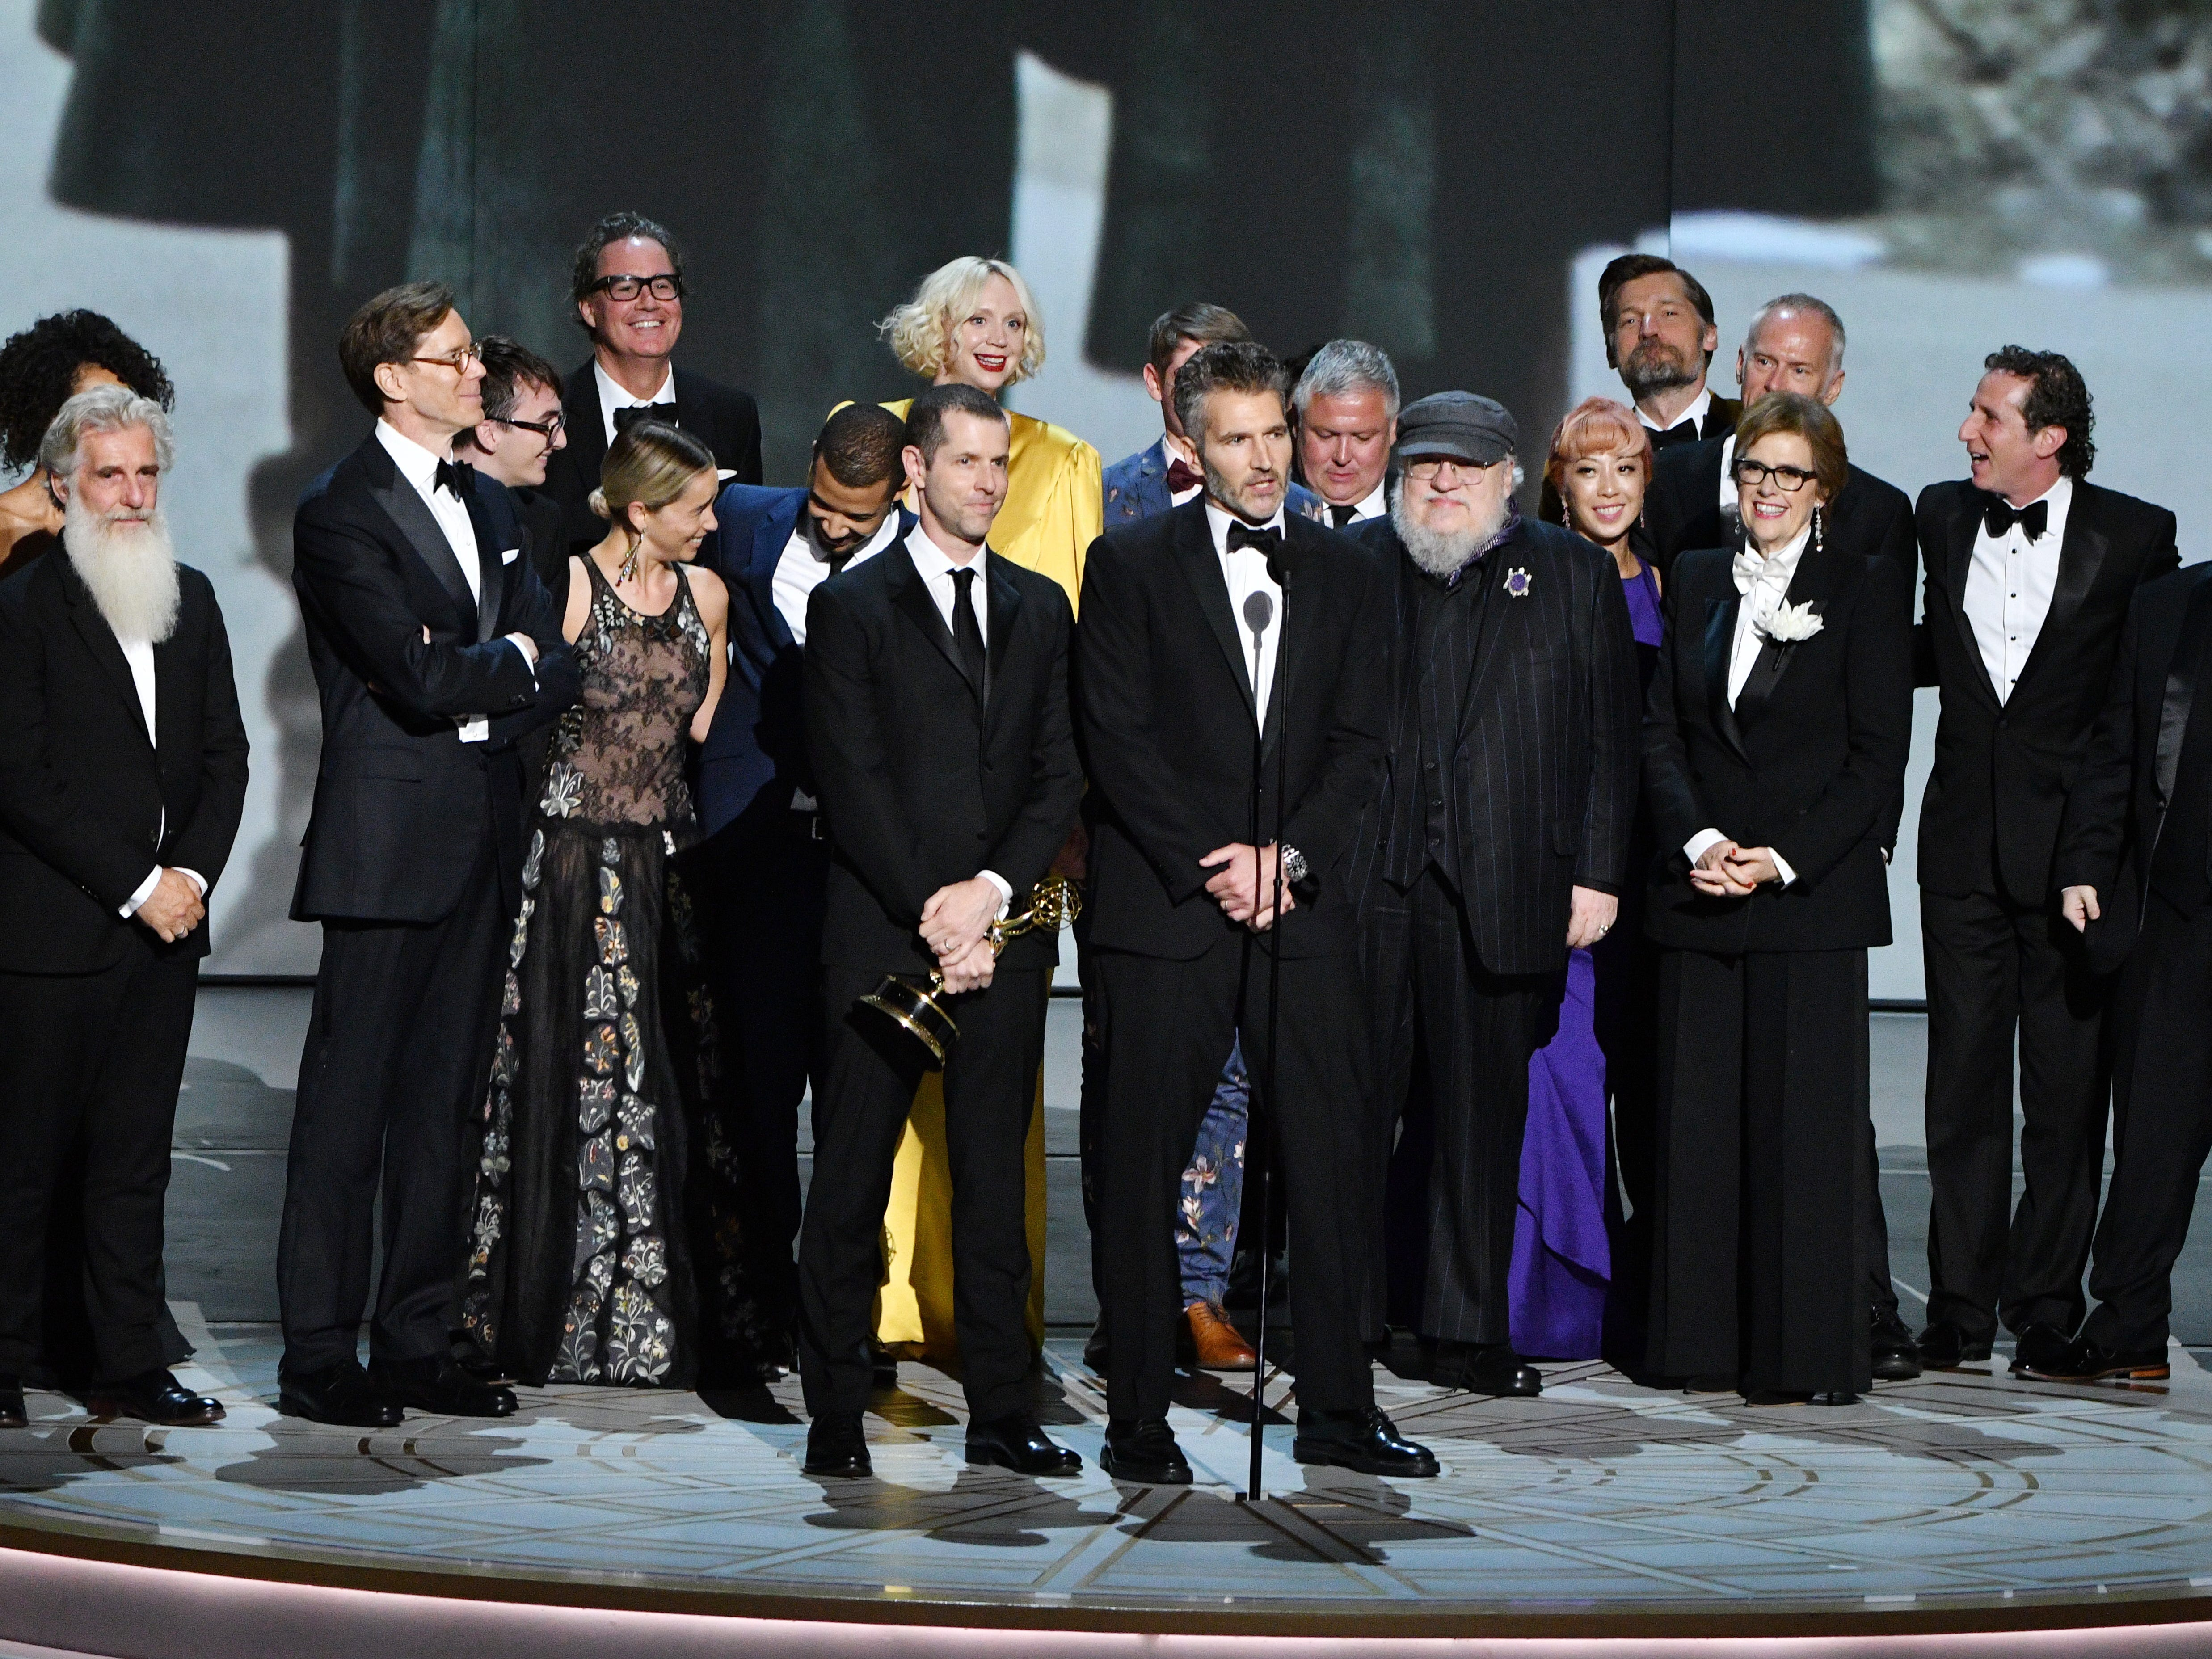 """D.B. Weiss, David Benioff and George R. R. Martin along with the cast and crew of """"Game Of Thrones"""" on HBO accept the award for outstanding drama series."""